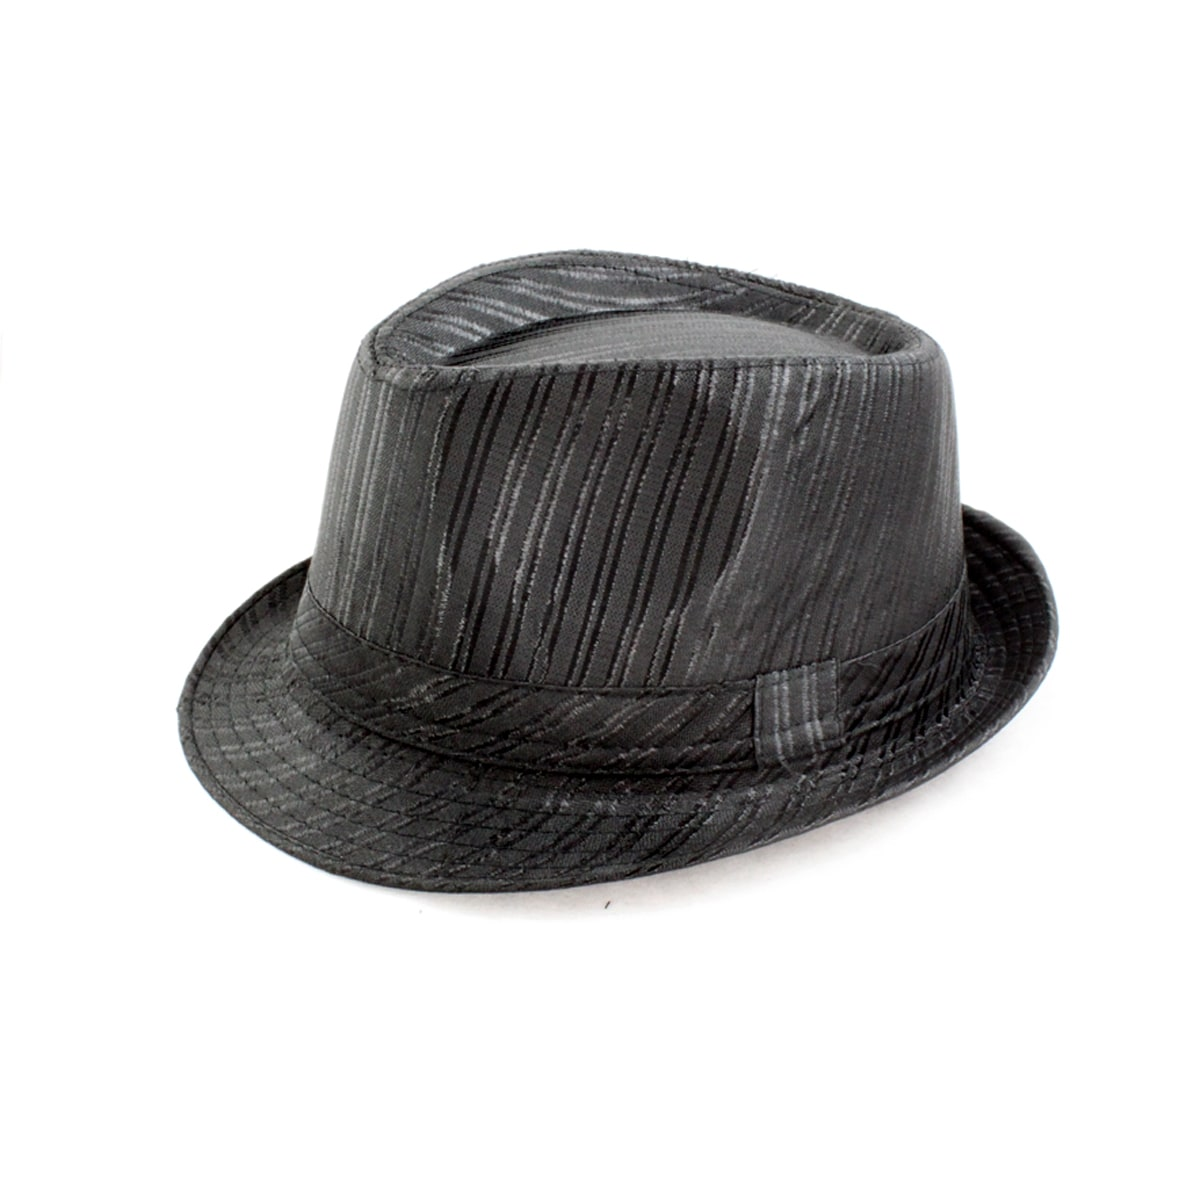 Faddism Textured Black Fedora Hat